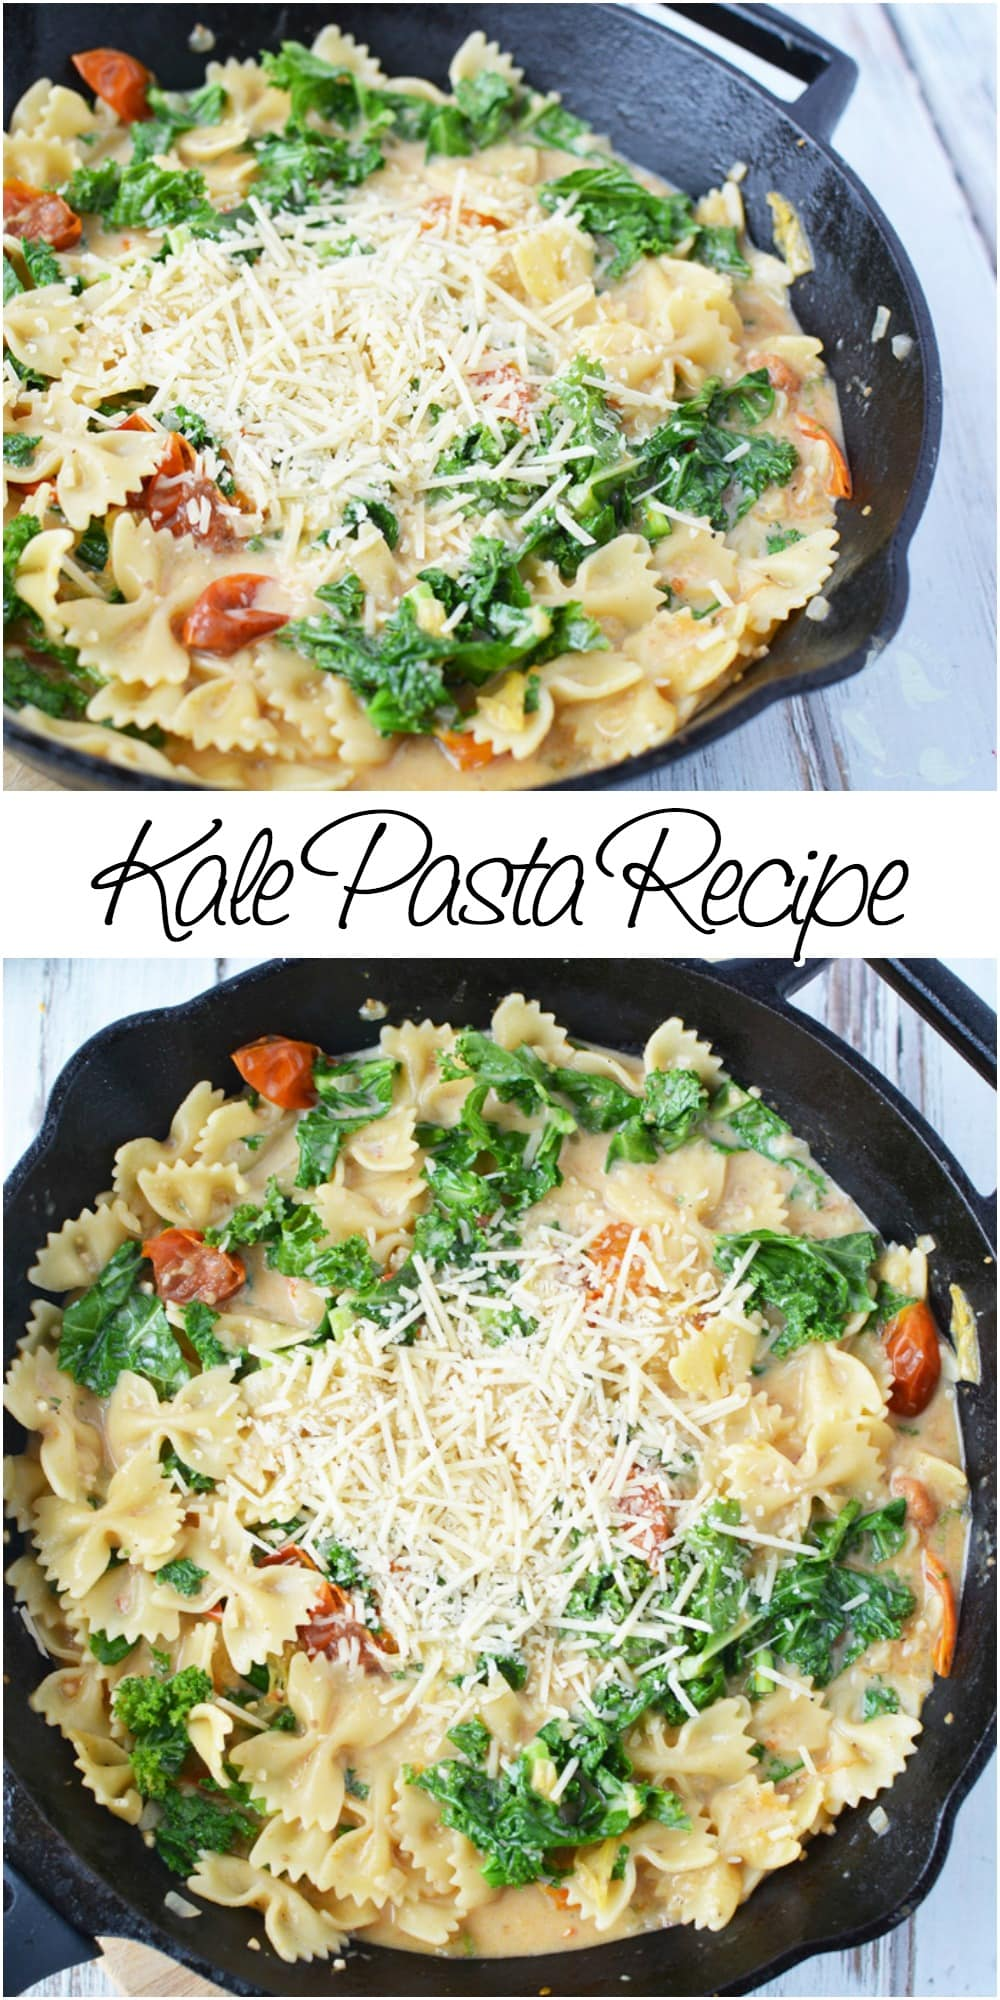 Kale pasta recipe - great for a meatless meal option #kale #pasta #skillet #meatlessmonday #meatless